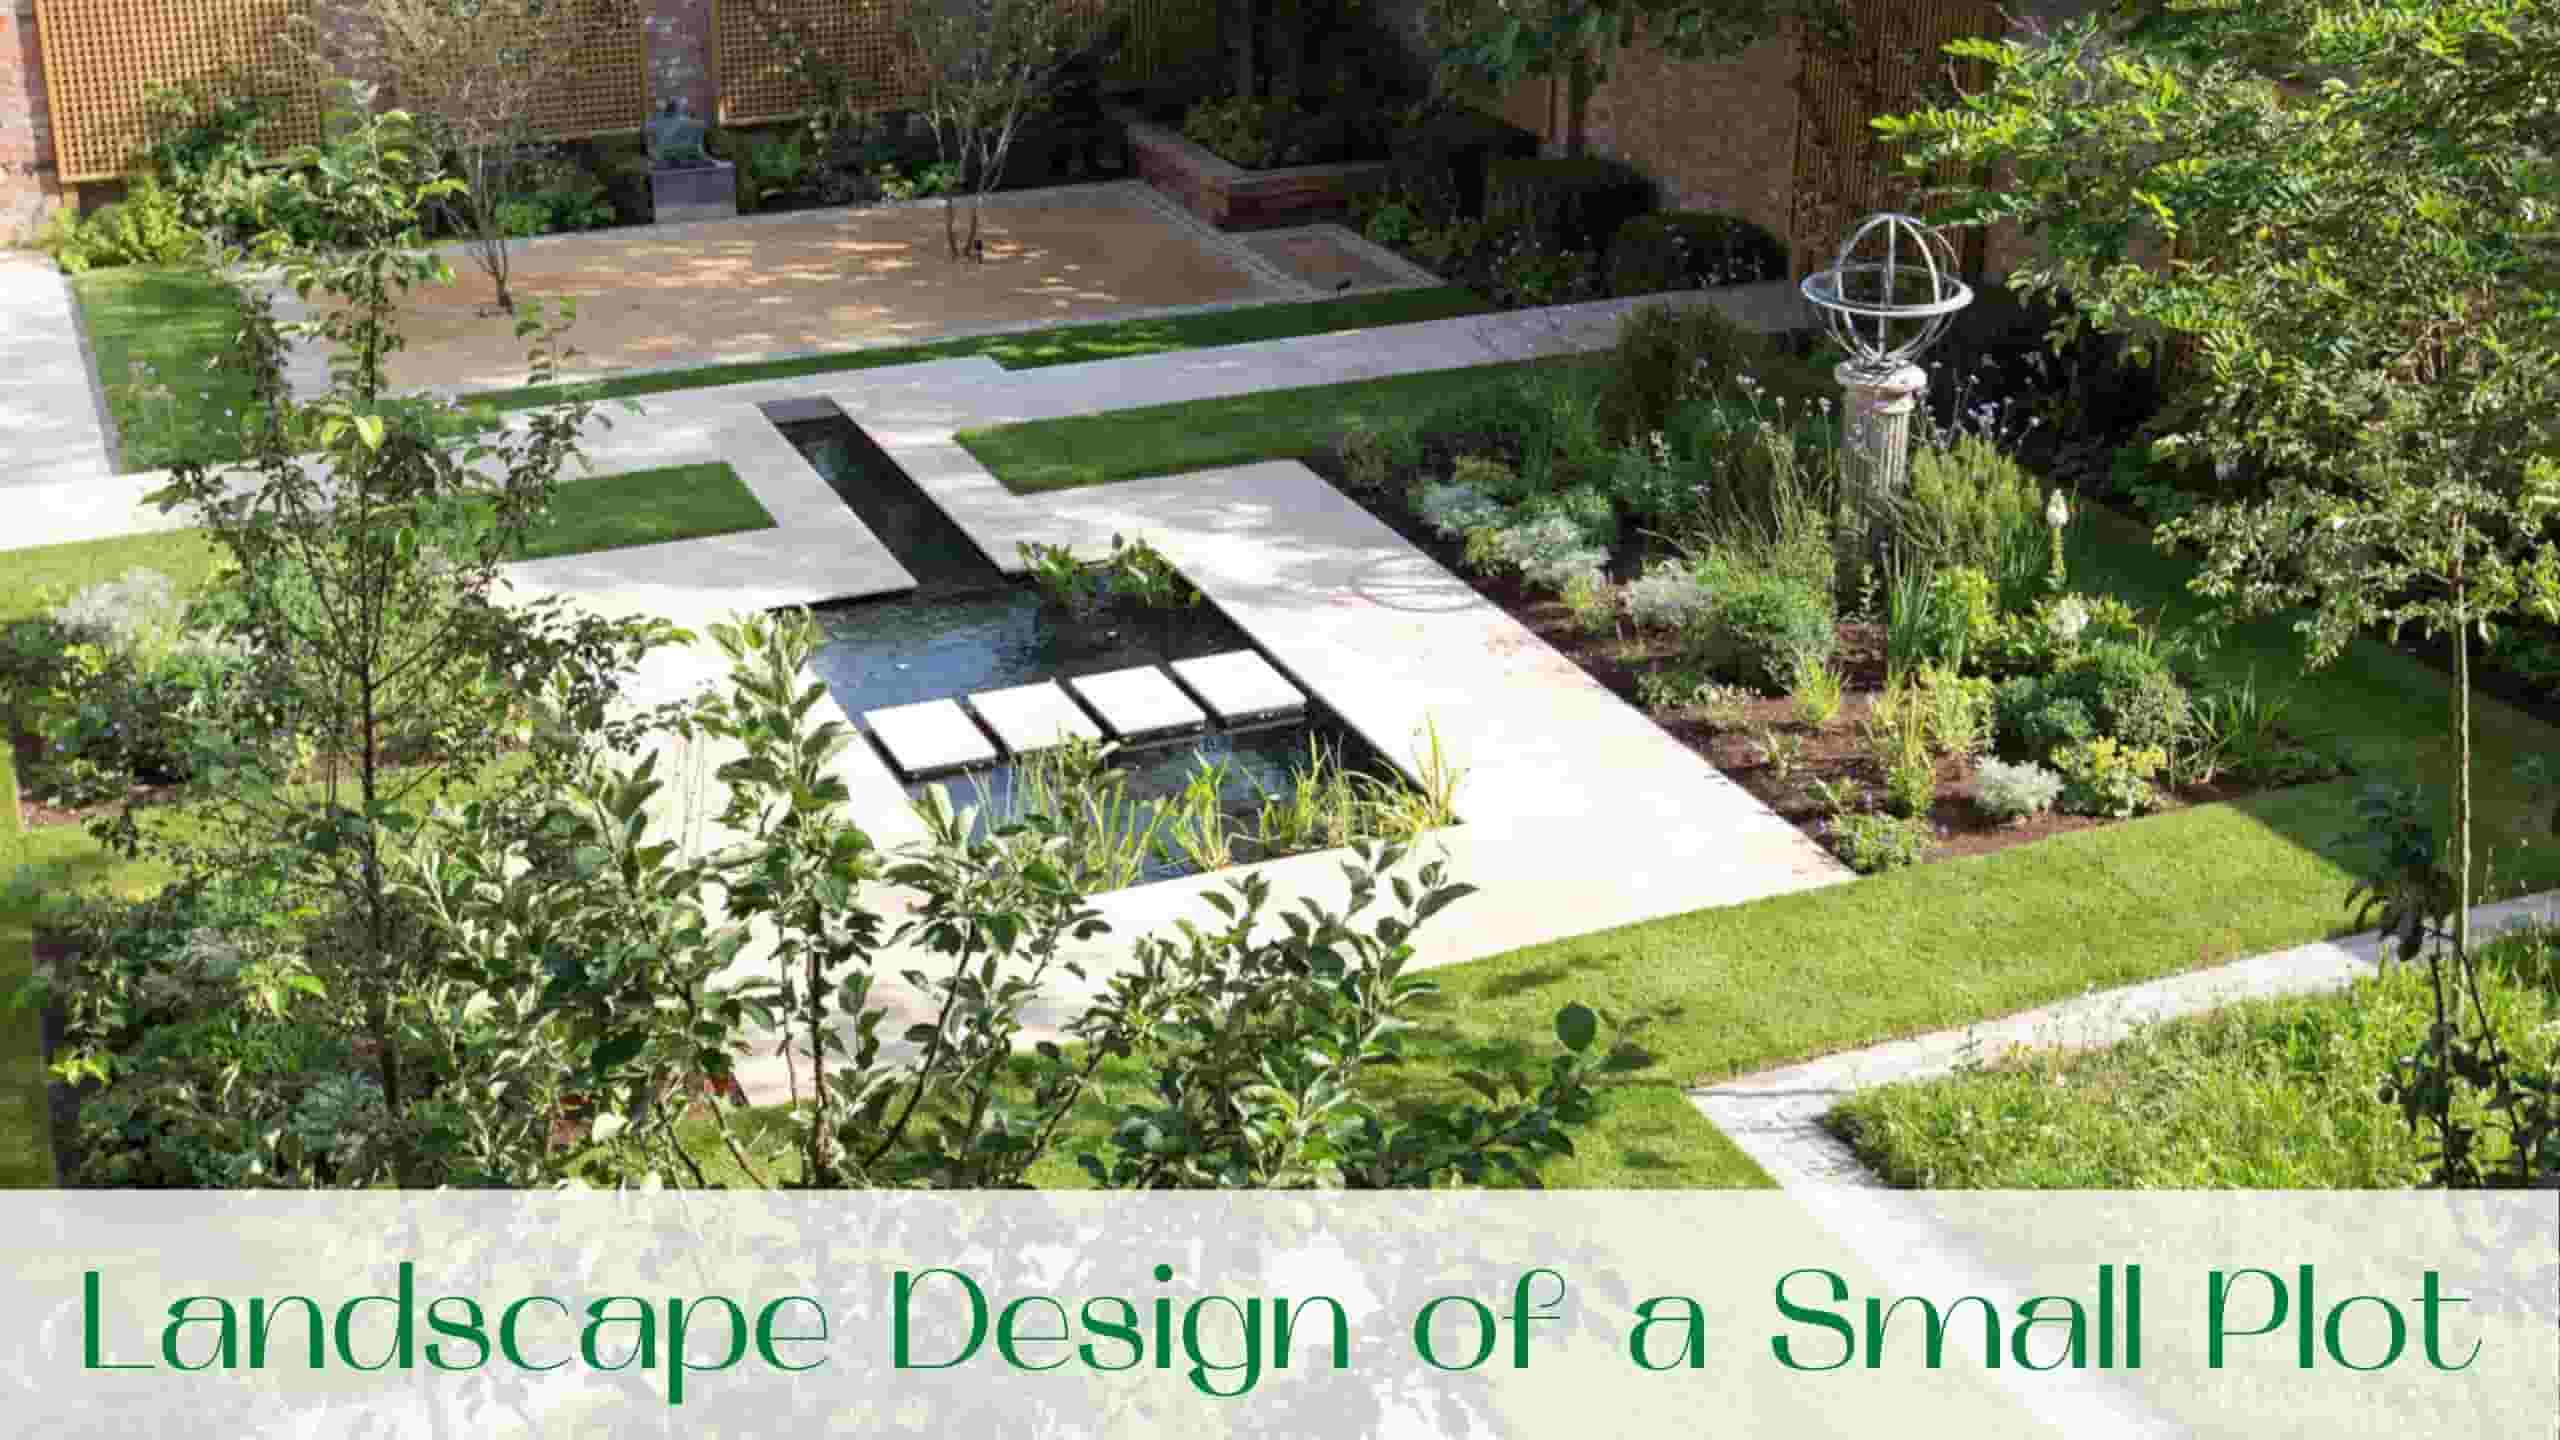 image-landscape-design-of-a-small-plot